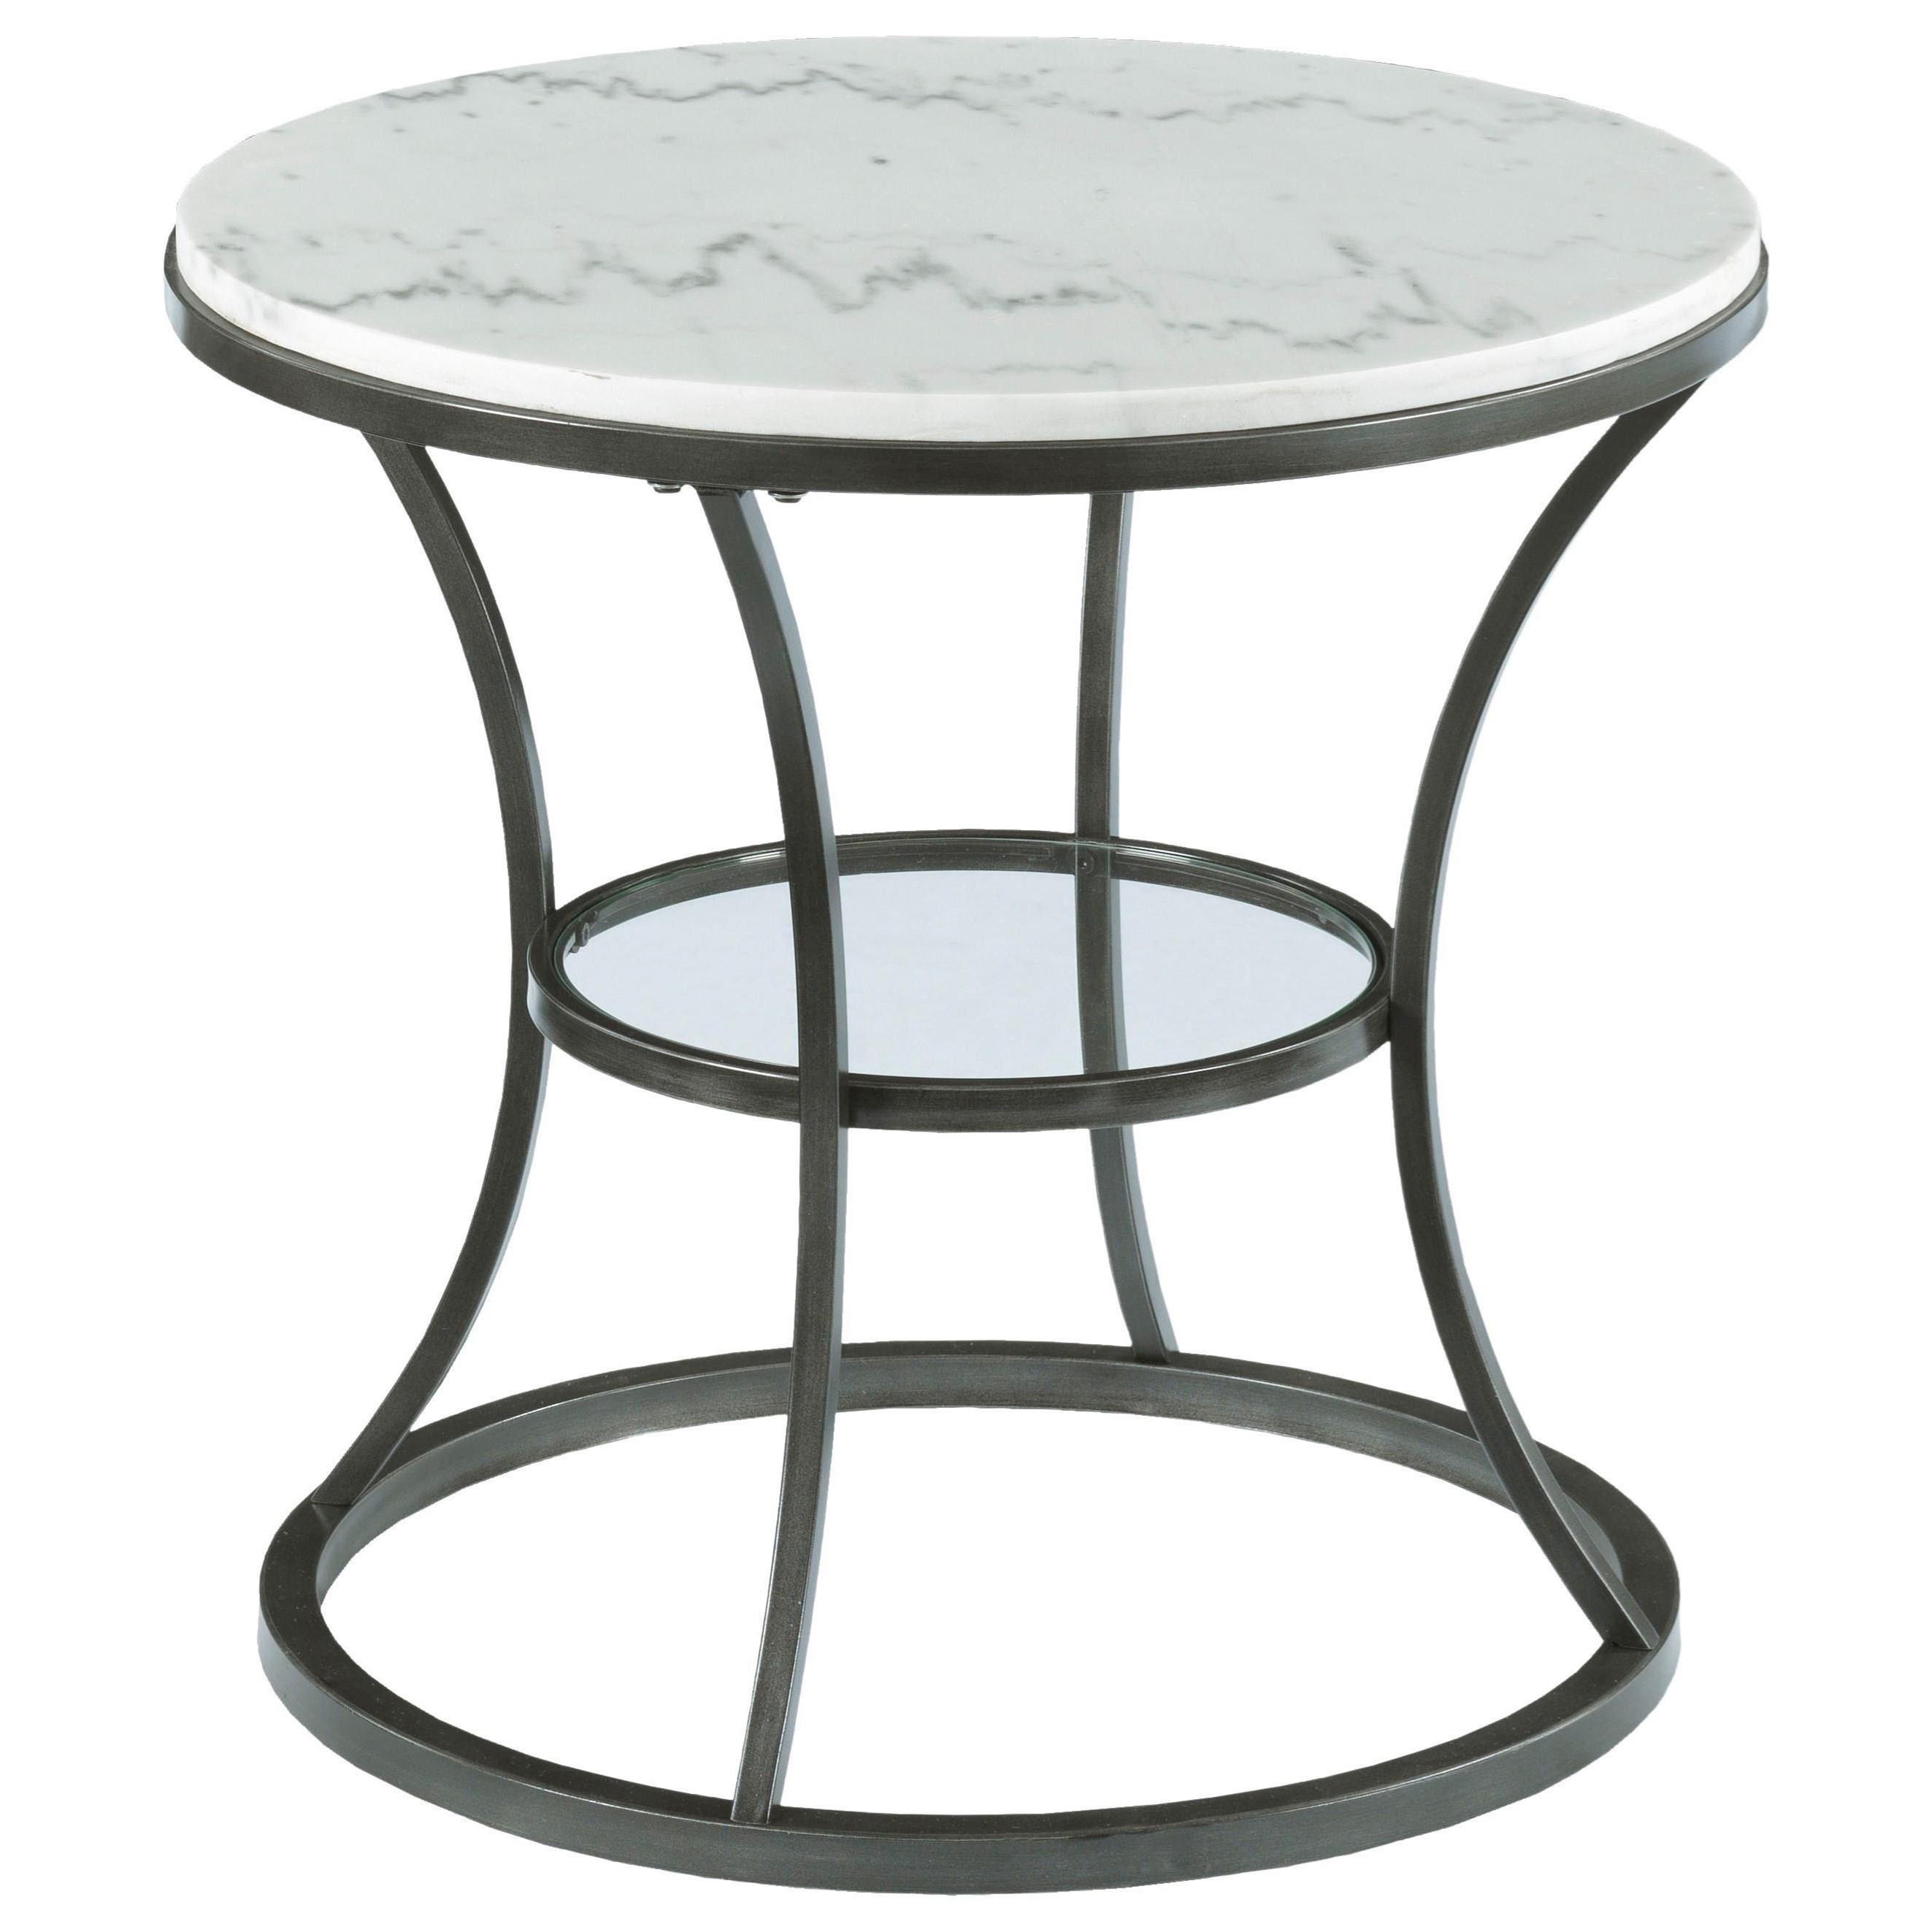 hammary impact round end table with marble top and glass copper accent set cube perspex coffee valley furniture nearby patio ideas ethan allen country french starfish lamp hampton